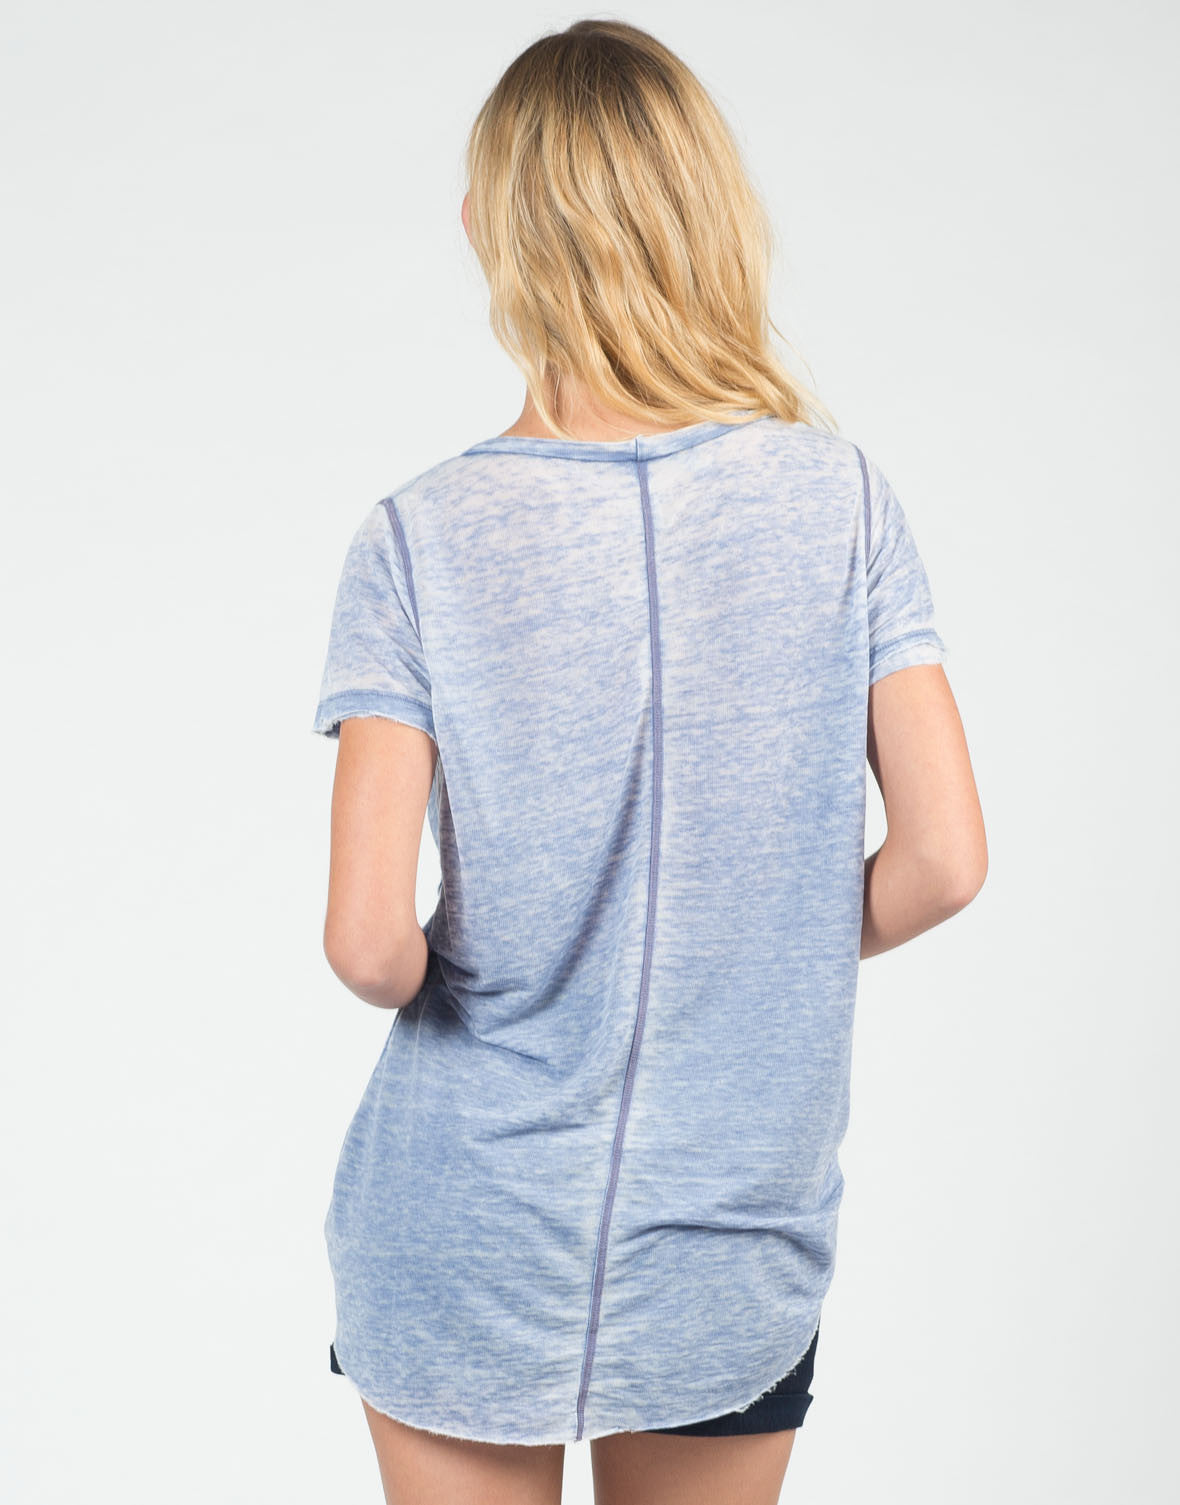 Back View of Distressed Heathered Tee